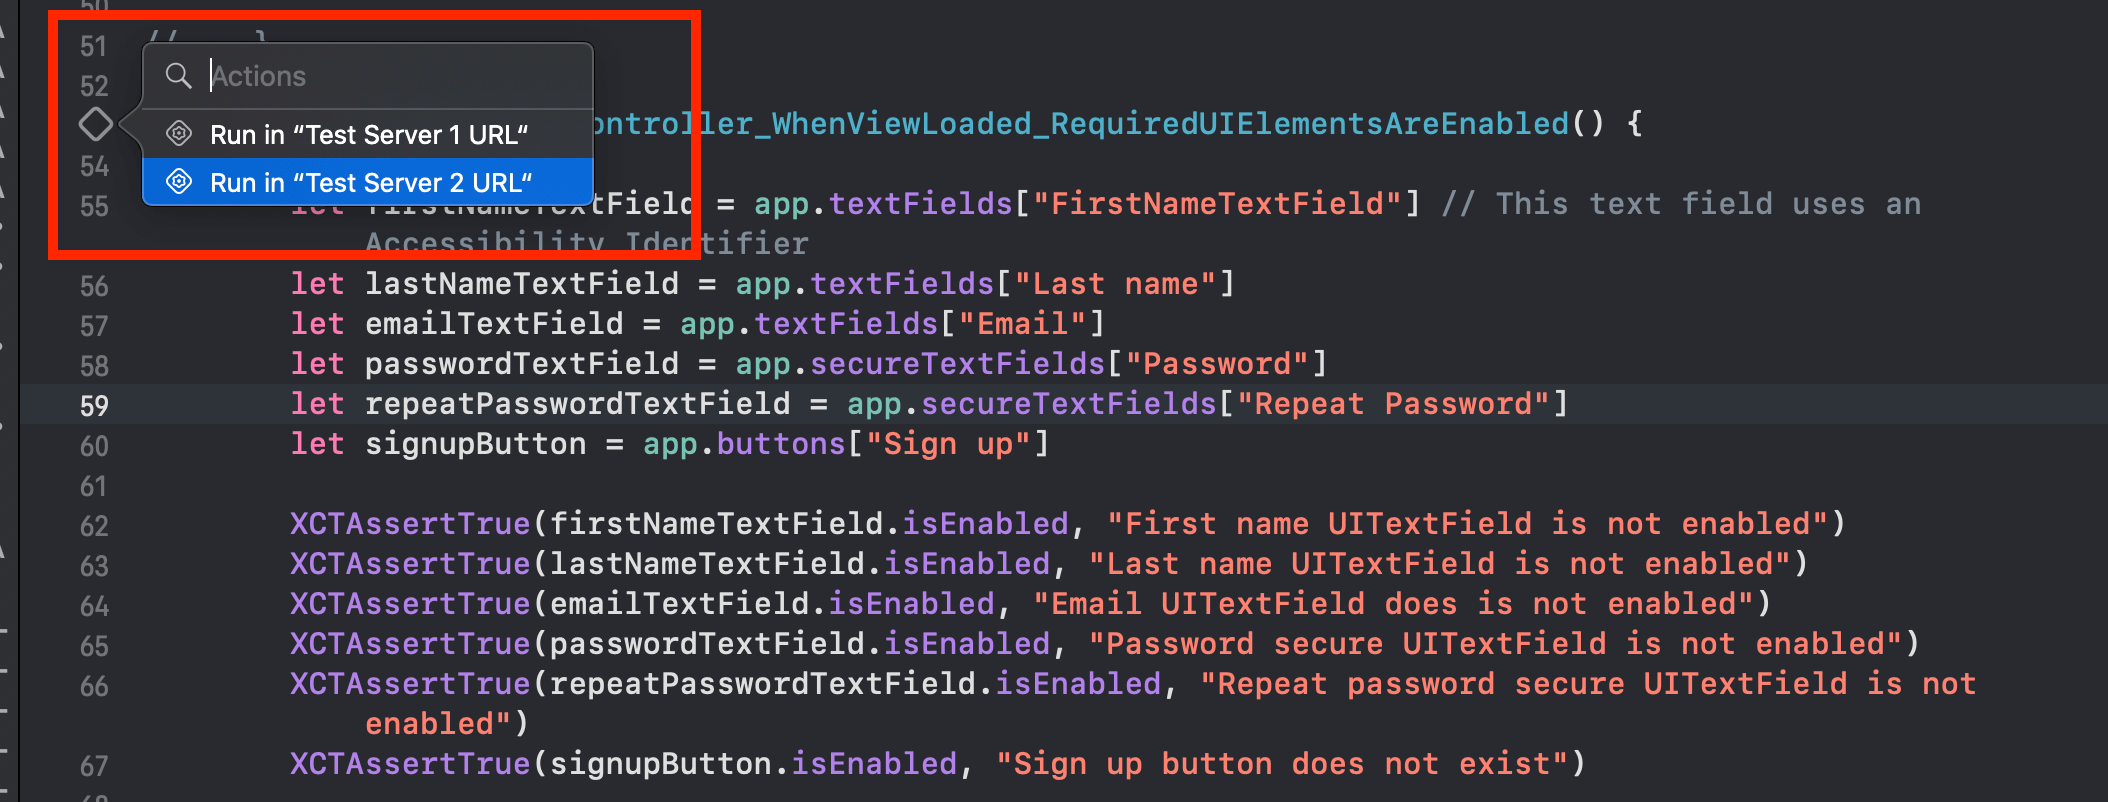 Running UI Test method with selected test plan configuration